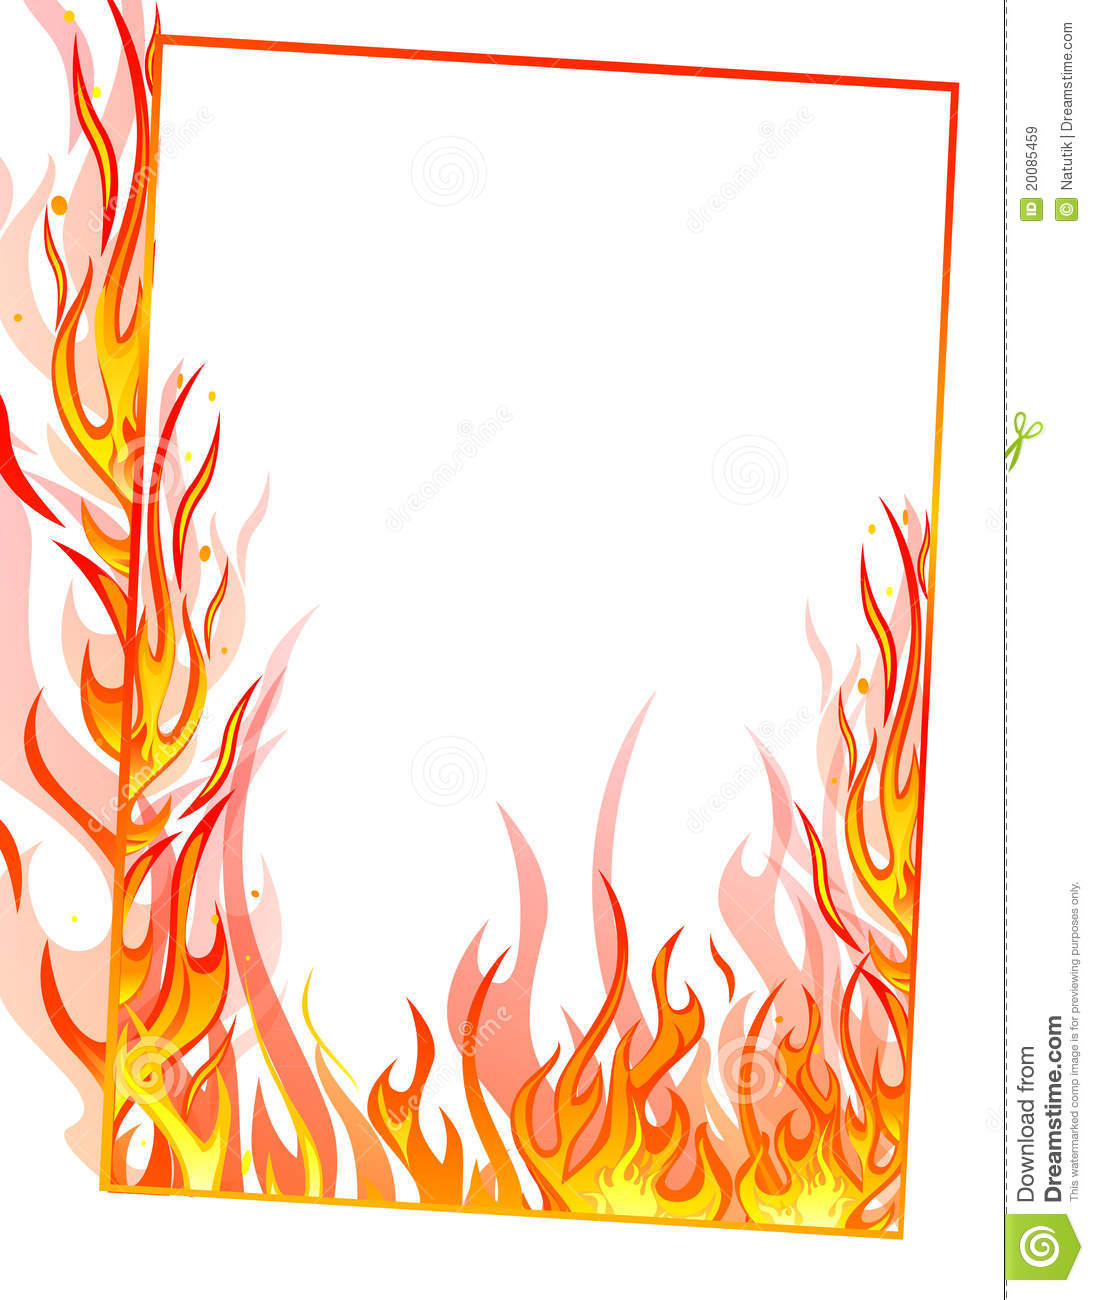 Fire clipart frame. Border free download best